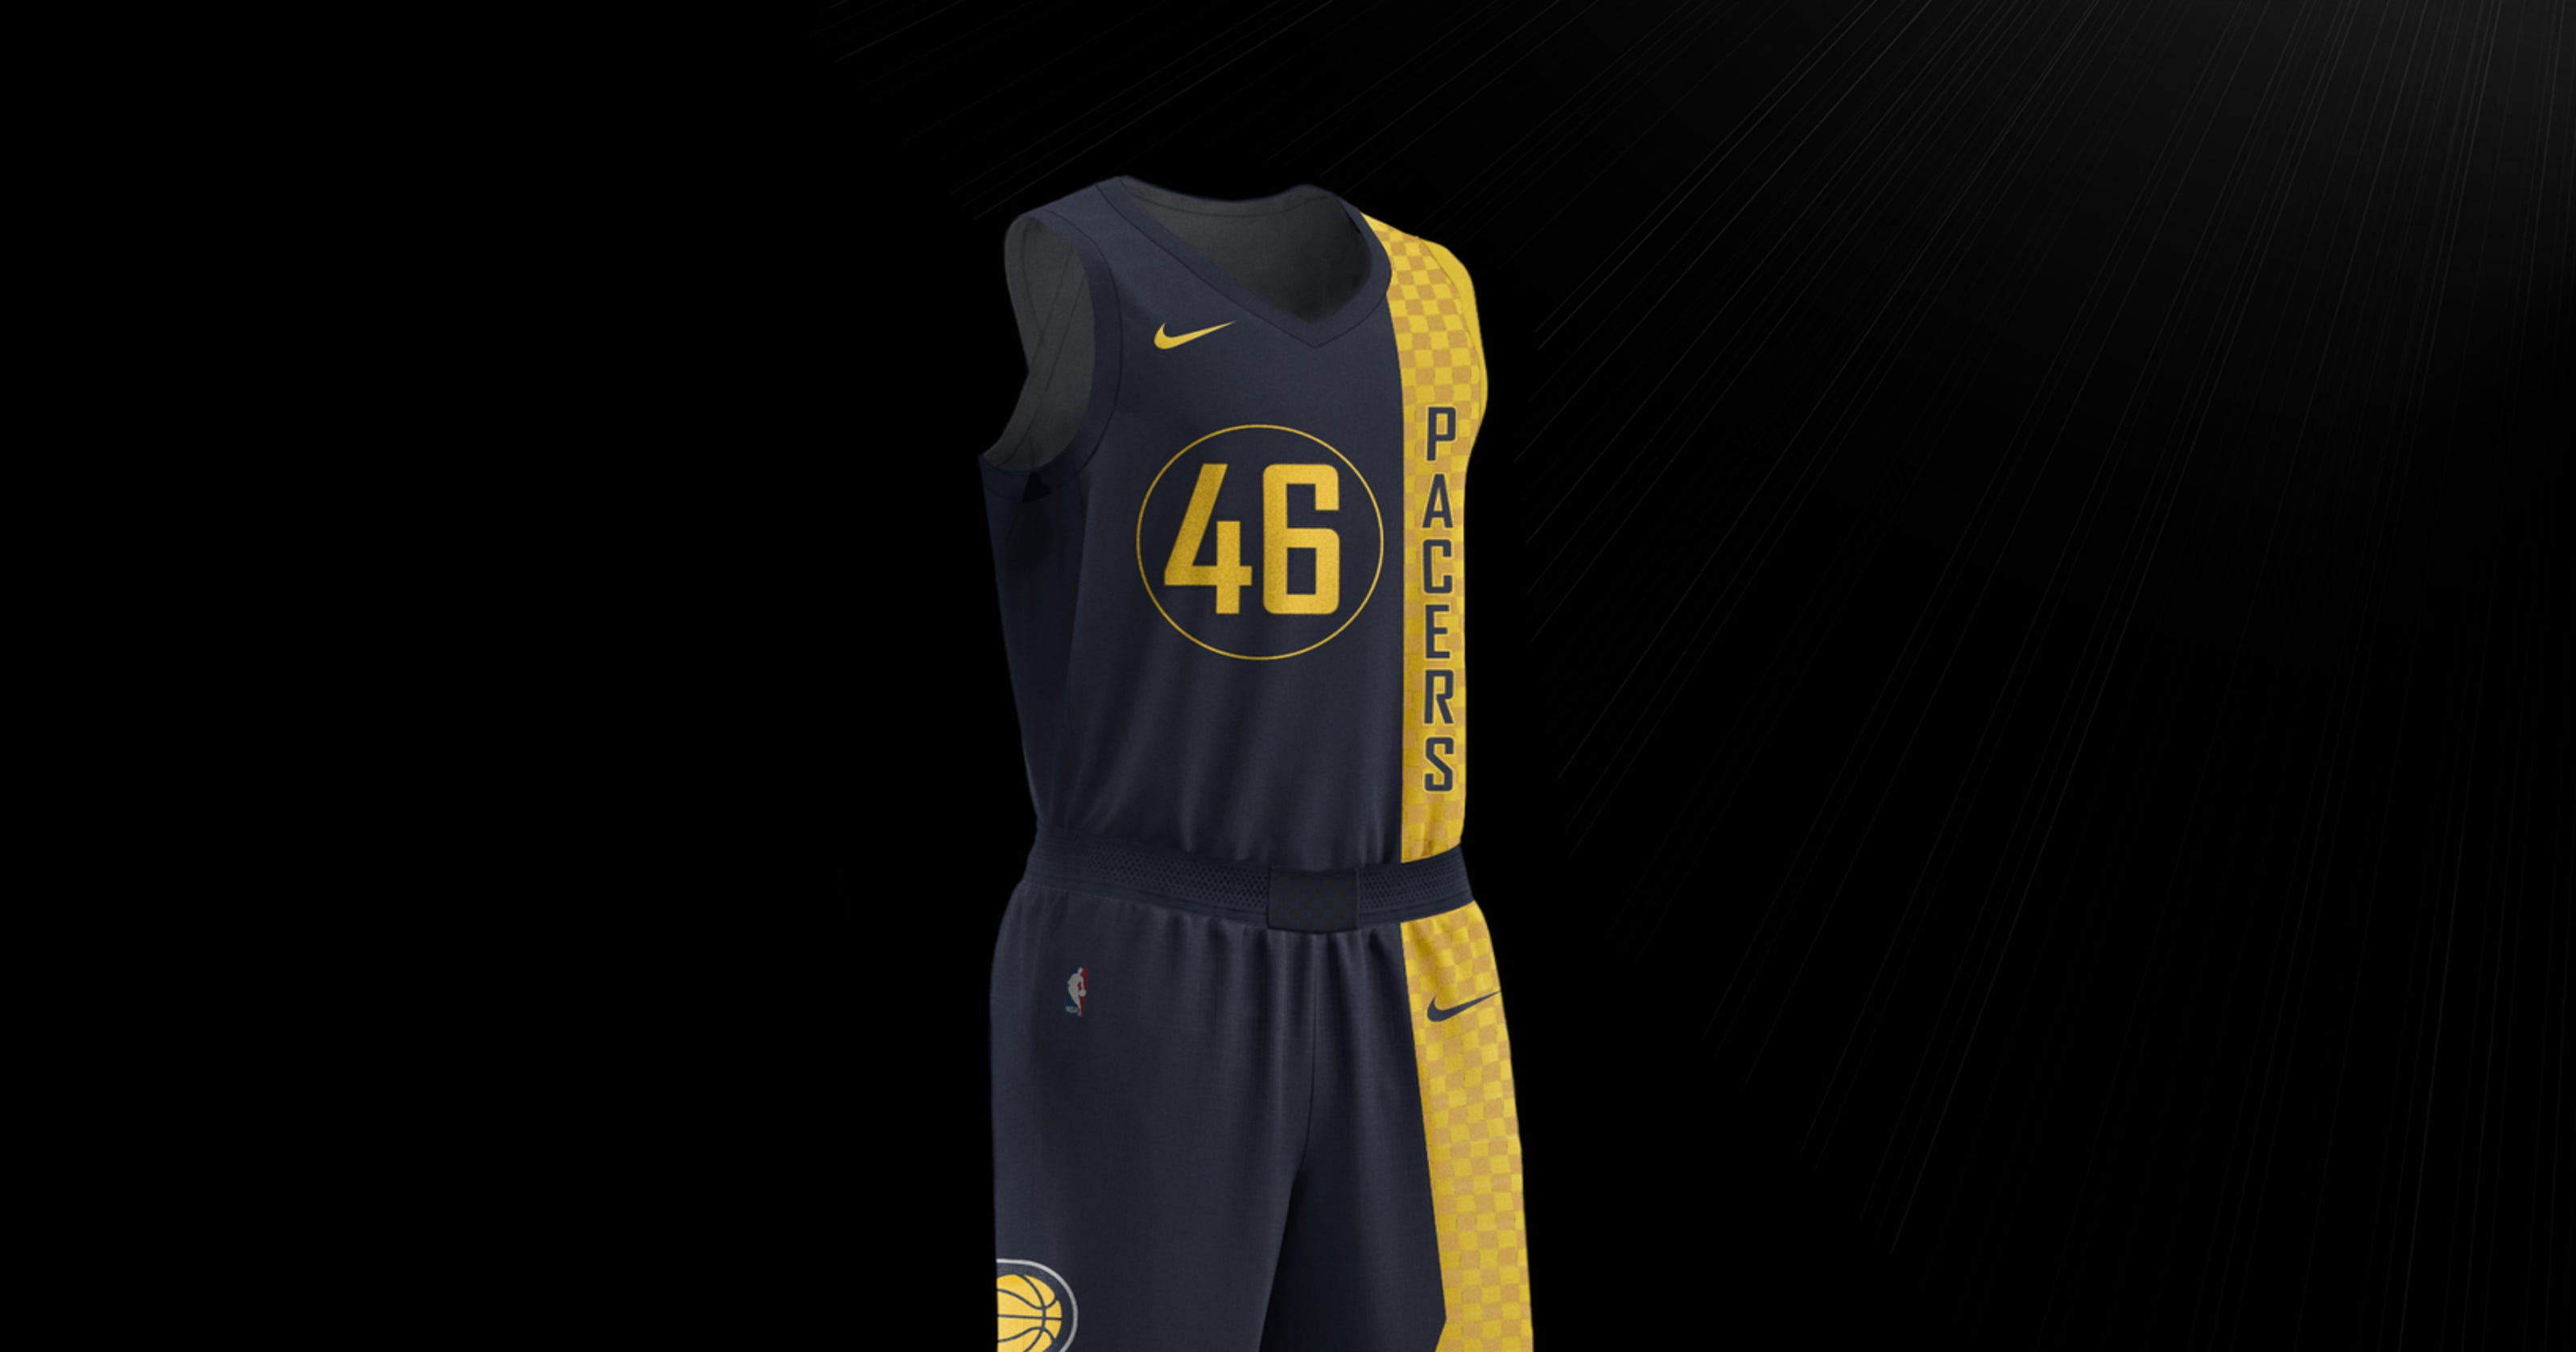 390ce3cc5 Pacers City jersey is liked by some fans and hated by others